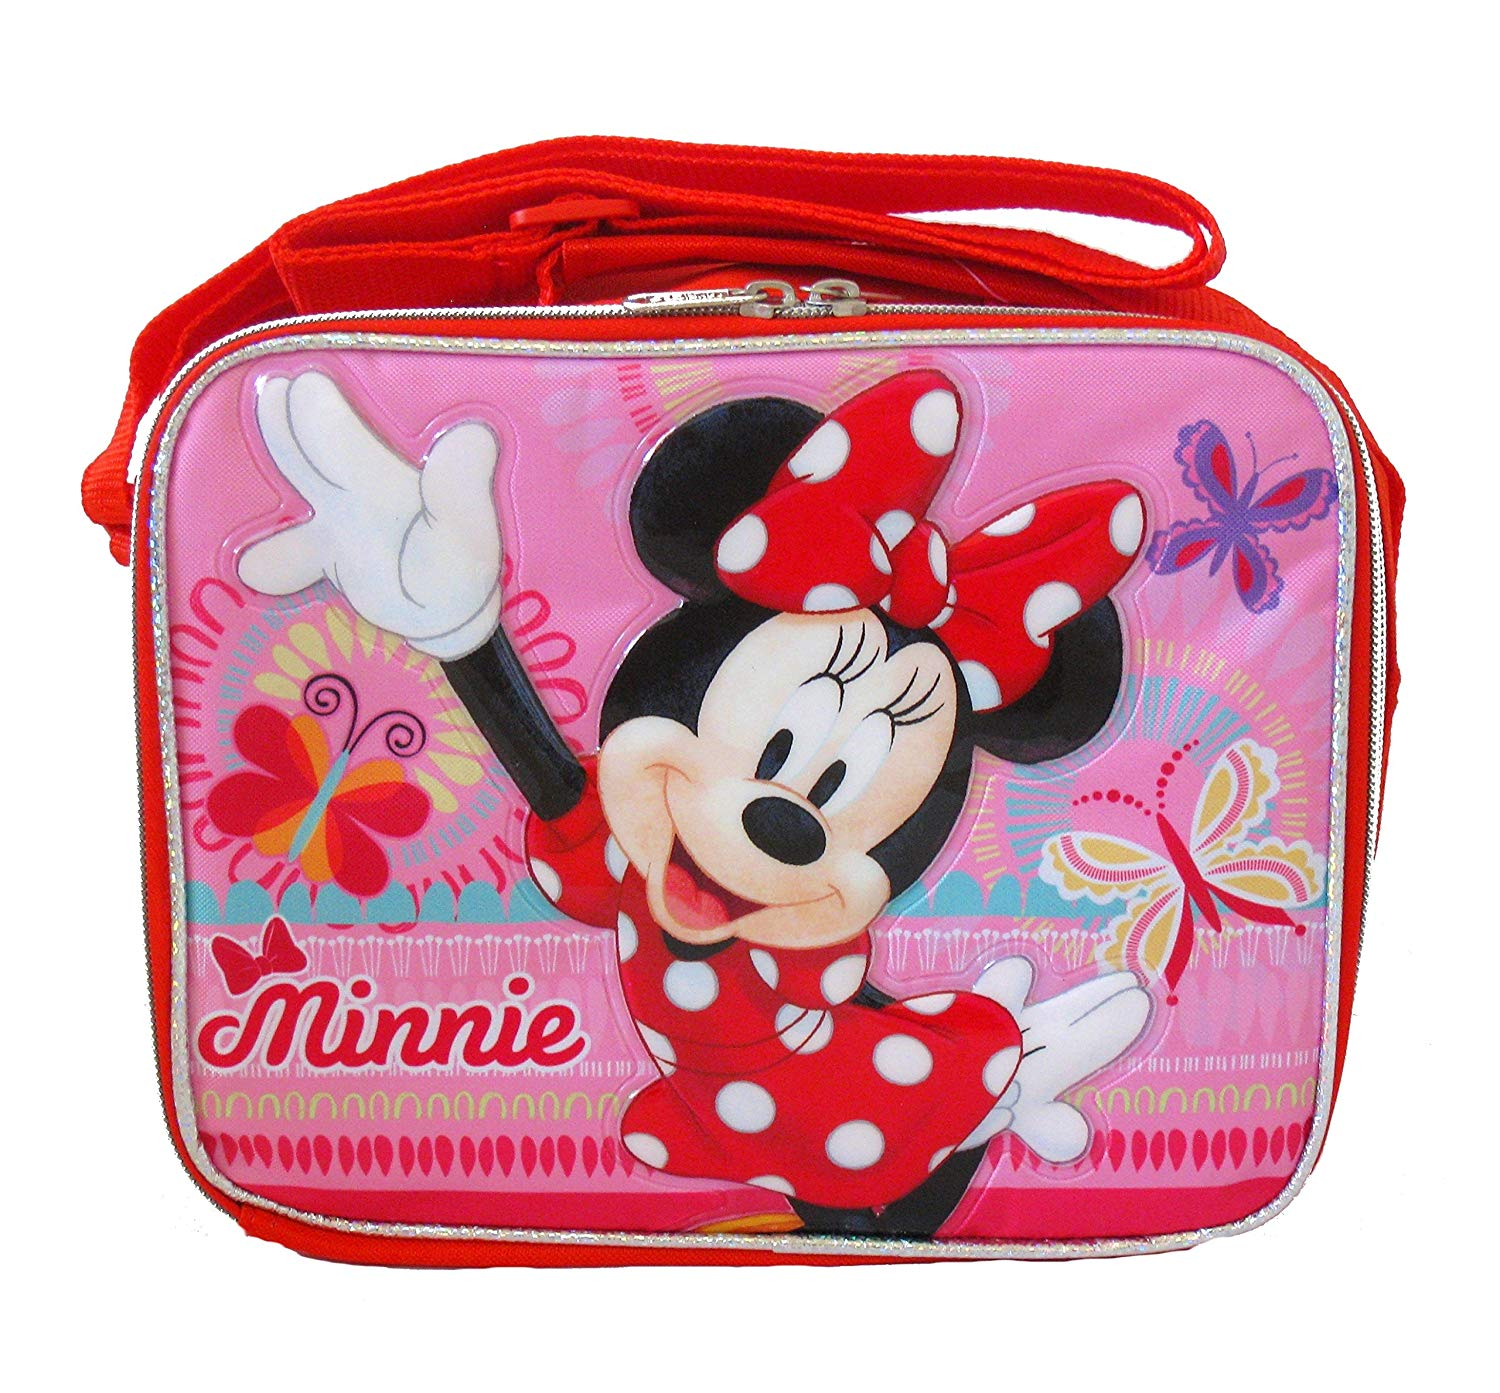 26404c82ad2 Get Quotations · Disney Minnie Mouse Soft Lunch box bag